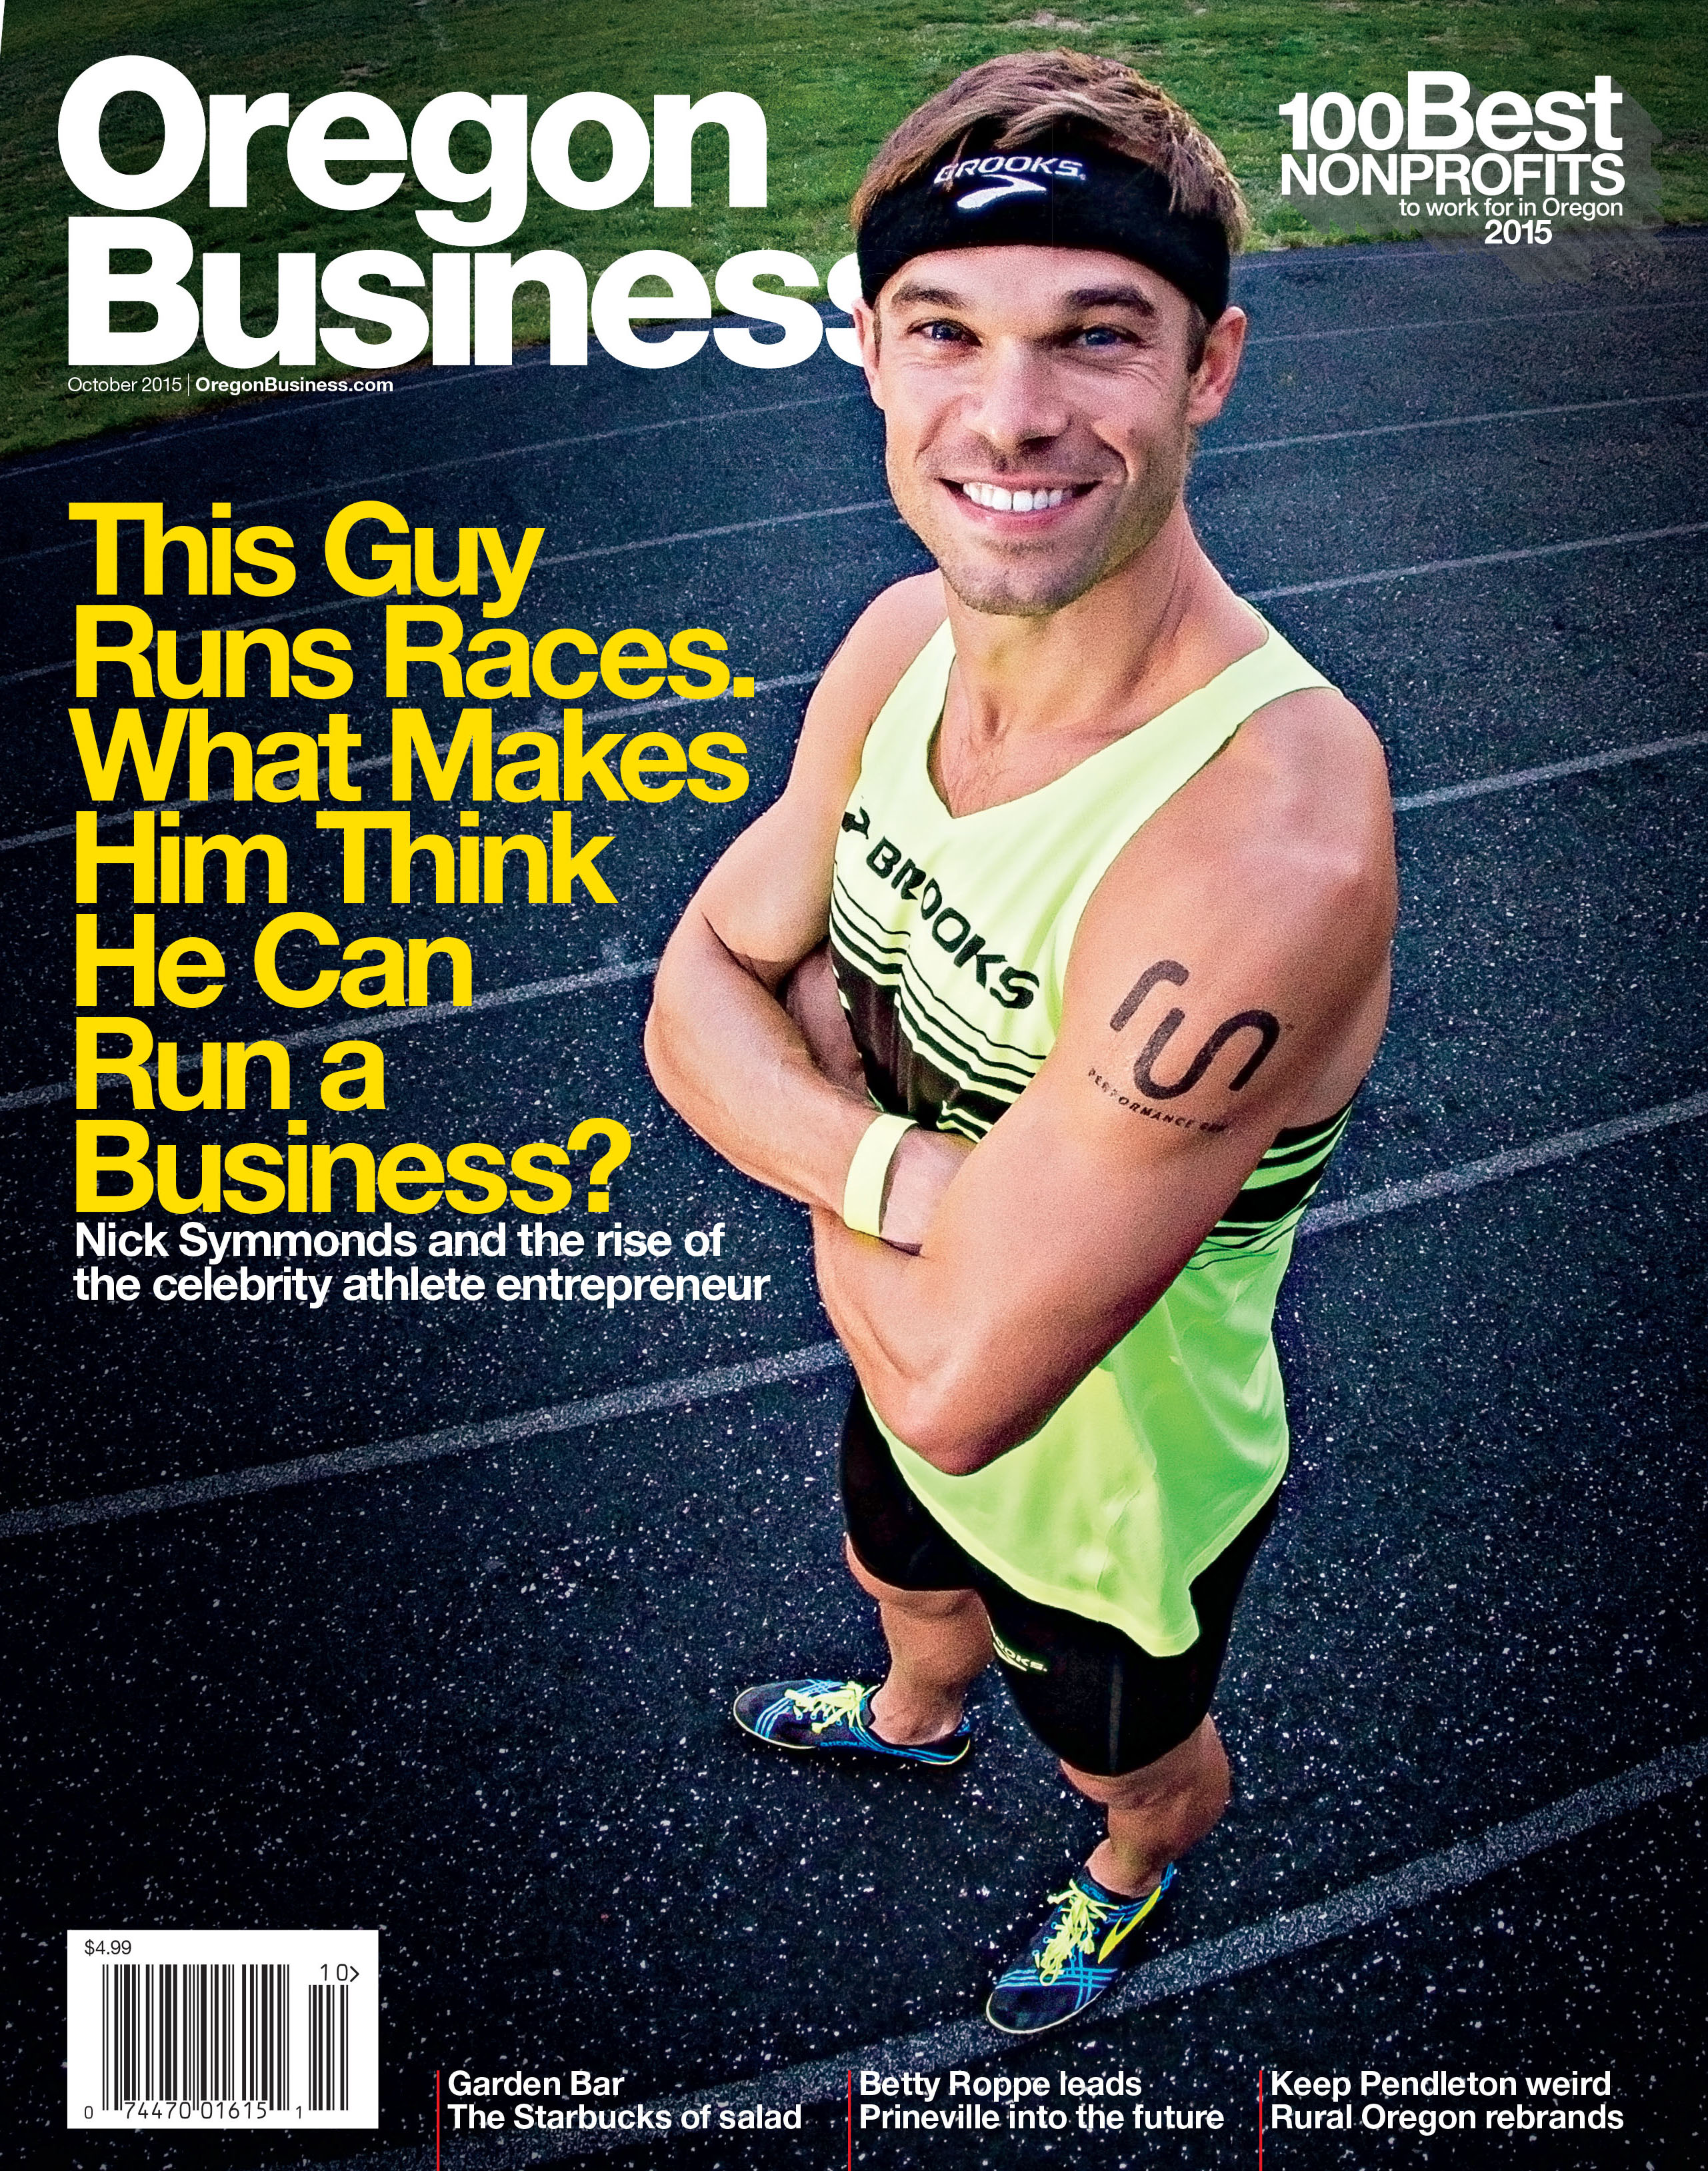 Oregon Business Cover October 2015